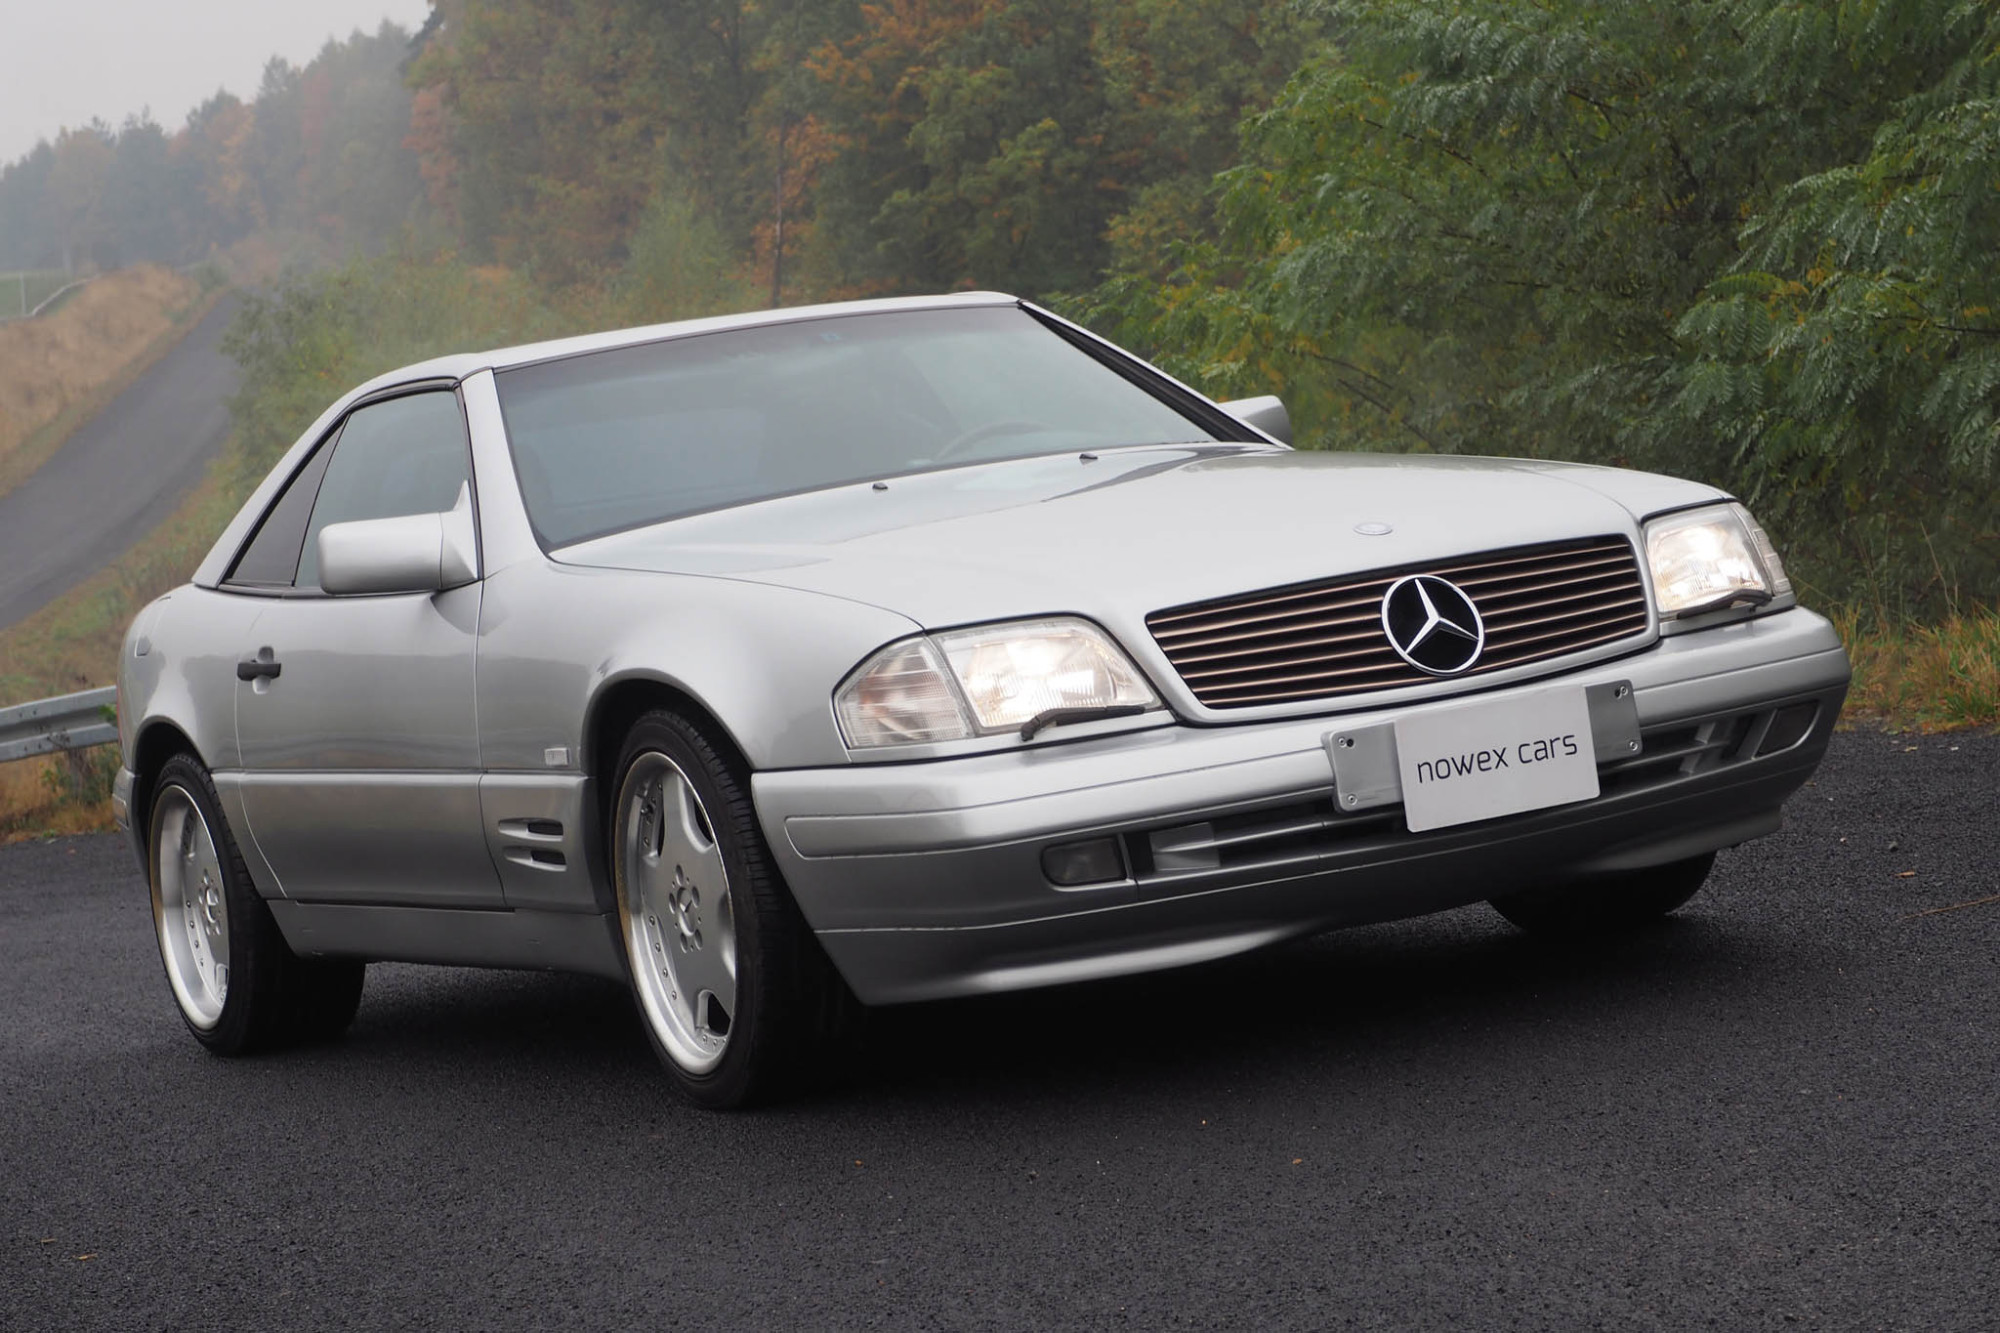 96 mercedes benz sl 500 nowex cars for 96 mercedes benz